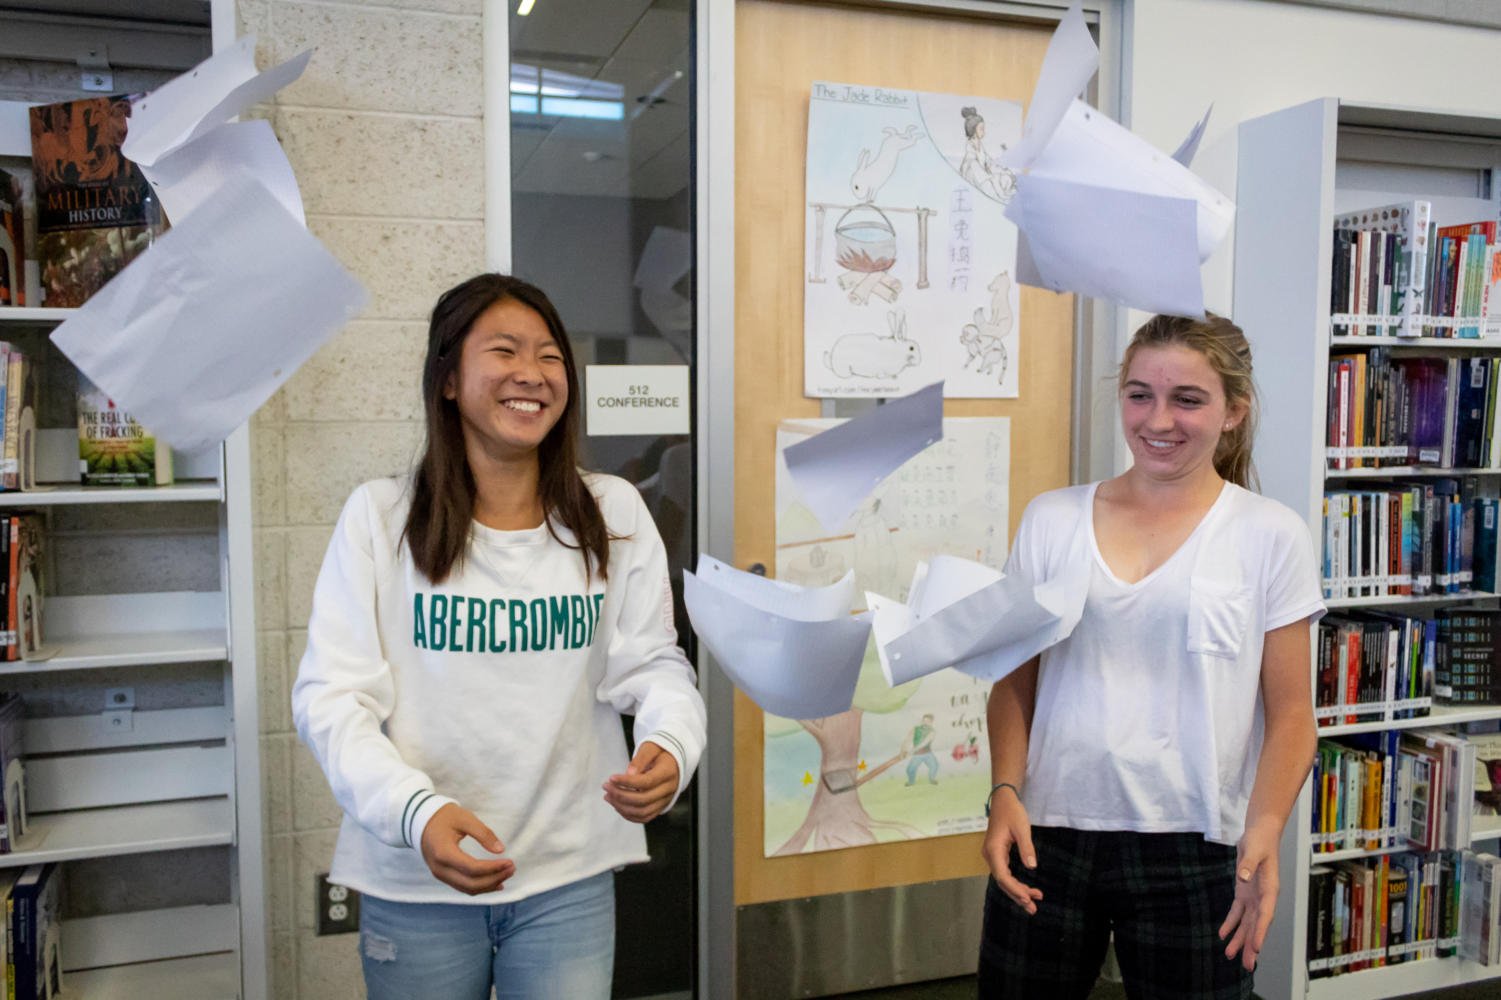 Sophomores Kate Hiyashi and Jordan Amlen are directors of Classline this year, which Hayashi began spring 2018. Since then, the team has created dozens of study guides and articles.